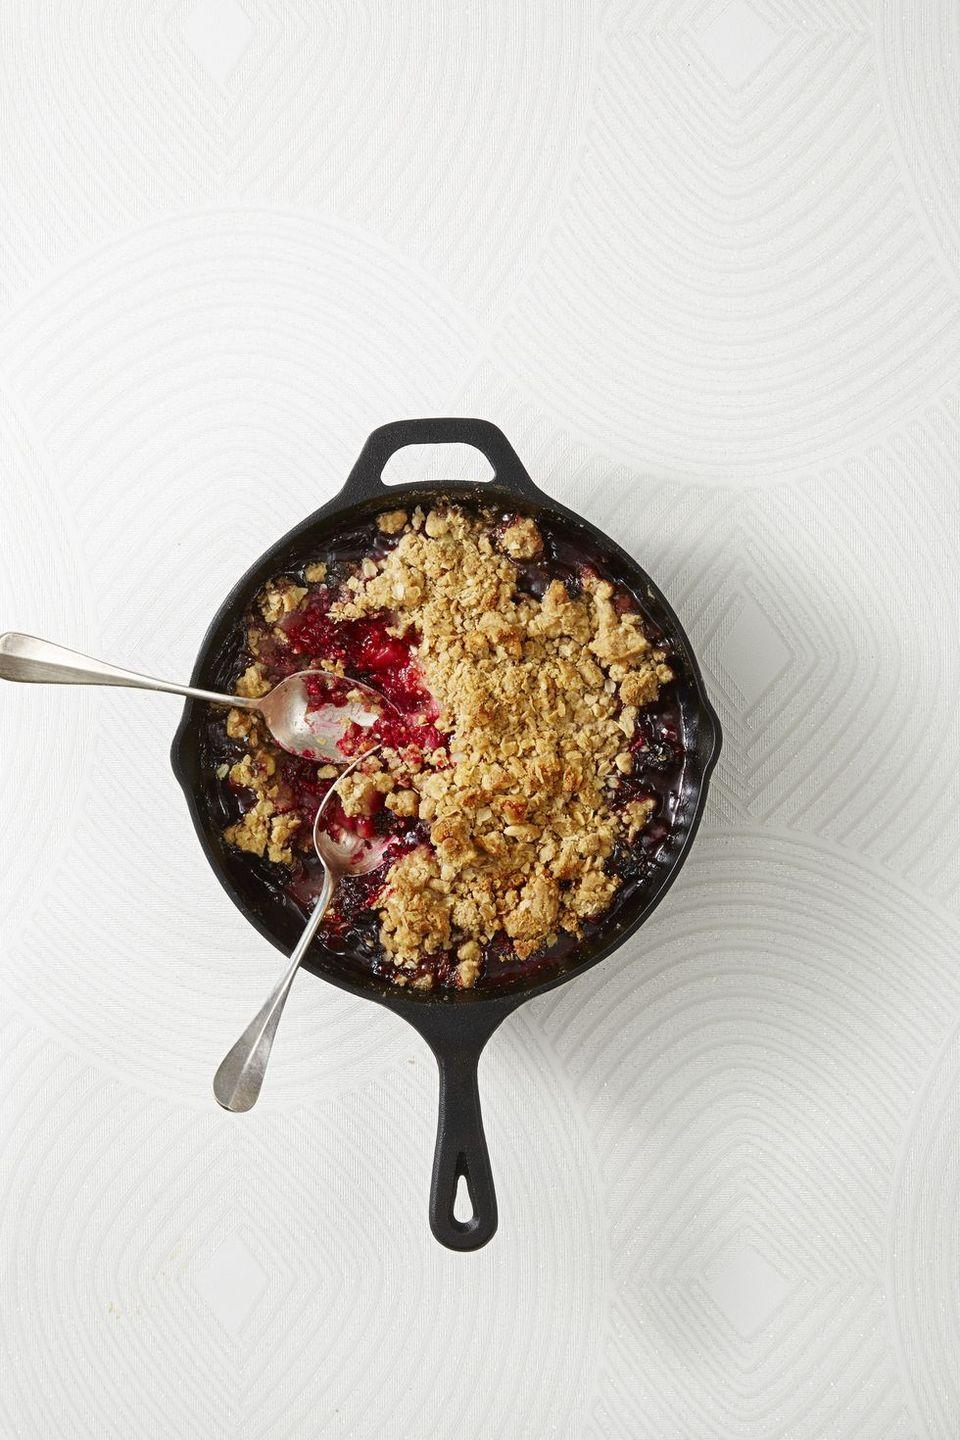 """<p>A crispy, buttery crumble, made with oats and walnuts, tops this dessert recipe's spiced-to-perfection berry insides.</p><p><em><a href=""""https://www.goodhousekeeping.com/food-recipes/dessert/a42825/spiced-pear-berry-crumble-recipe/"""" rel=""""nofollow noopener"""" target=""""_blank"""" data-ylk=""""slk:Get the recipe for Spiced Pear and Berry Crumble »"""" class=""""link rapid-noclick-resp"""">Get the recipe for Spiced Pear and Berry Crumble »</a></em></p>"""